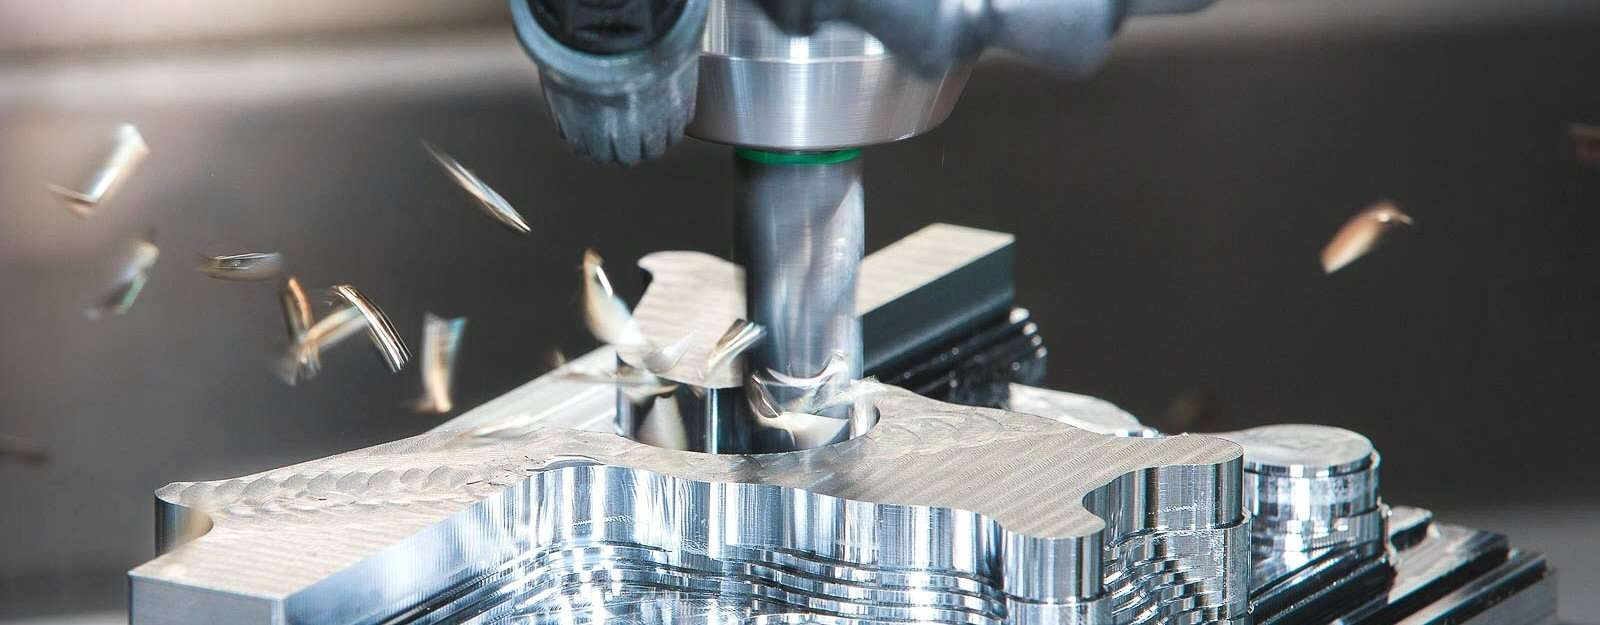 With the development of processing technology, CNC machining has been widely used in aircraft engine parts, drone parts, auto parts, motorcycle parts, bicycle parts, medical accessories, etc. 3QMACHINING company has a wealth of CNC machining experience, from drawing confirmation, prototype design to perfect processing, on-time delivery, 3QMACHINING company can meet your requirements.